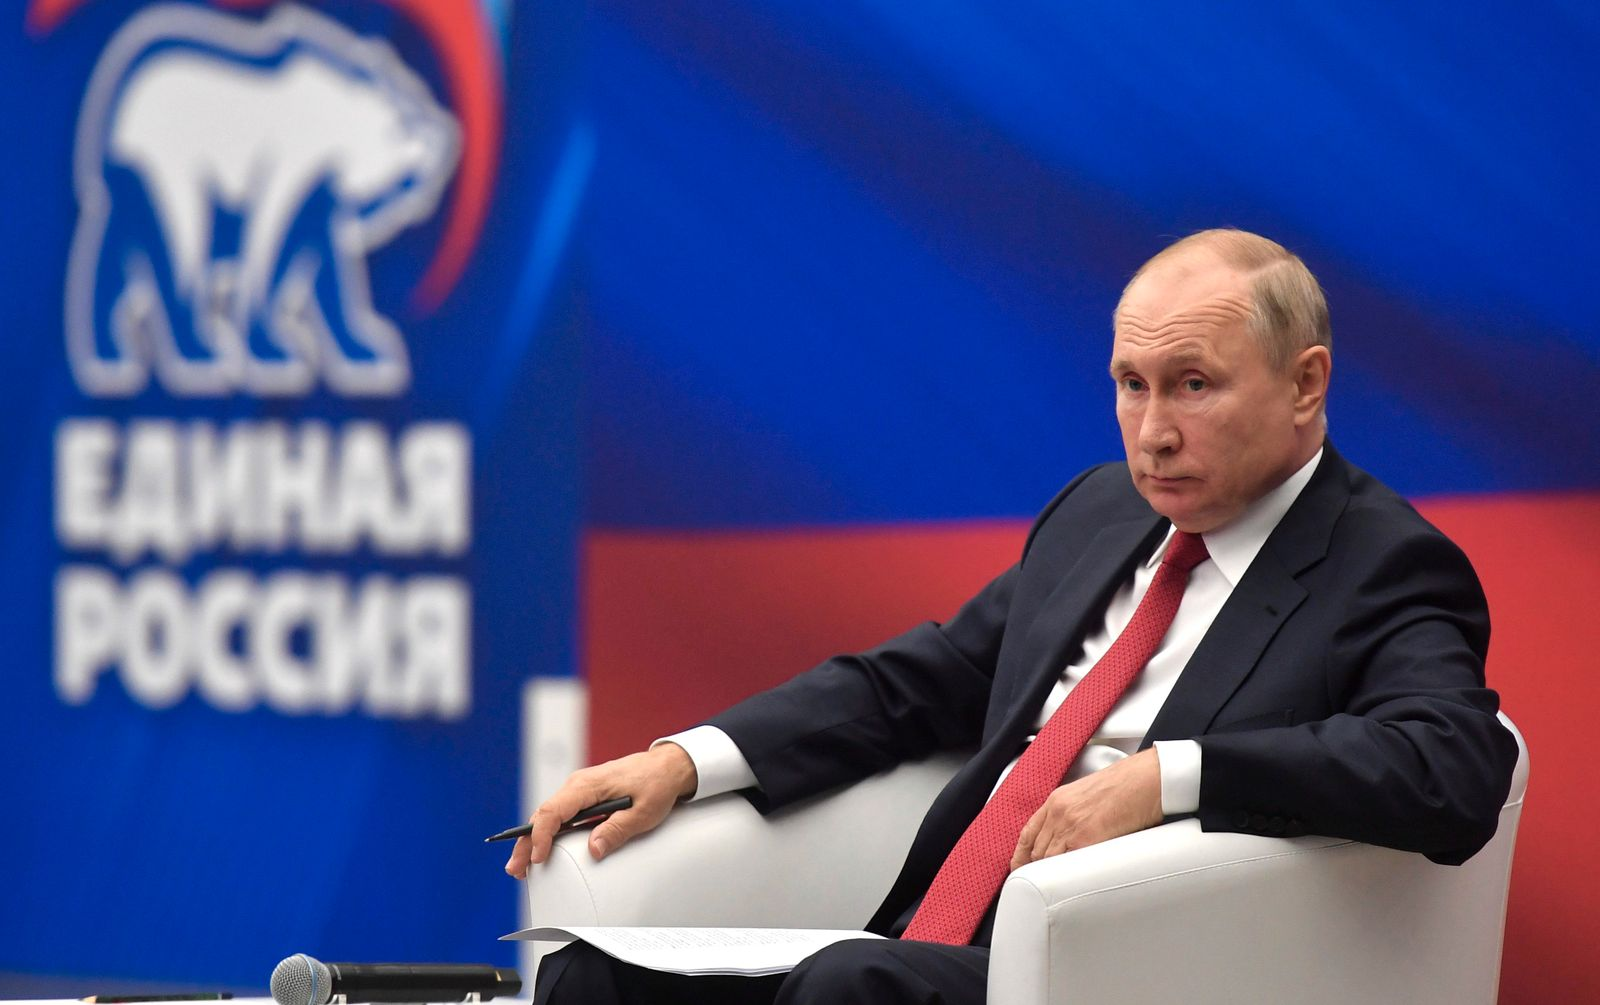 Putin attends United Russia party meeting in Moscow